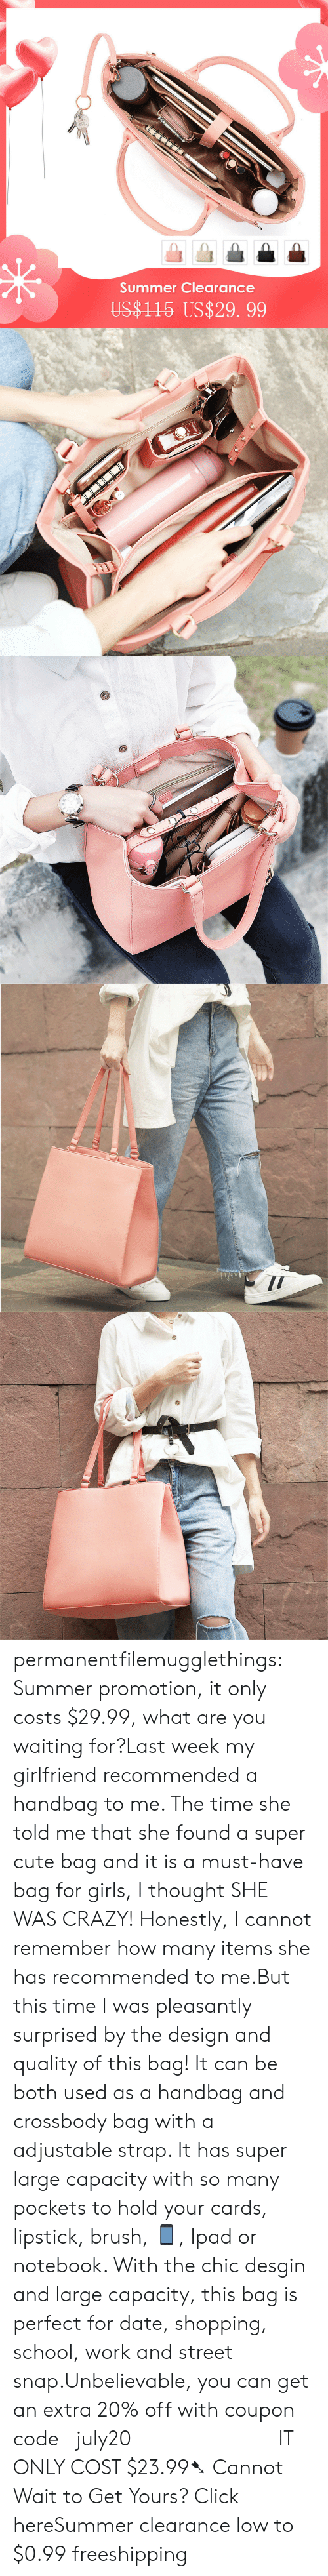 promotion: Summer Clearance  US$1 15 US$29. 99 permanentfilemugglethings:  Summer promotion, it only costs $29.99, what are you waiting for?Last week my girlfriend recommended a handbag to me. The time she told me that she found a super cute bag and it is a must-have bag for girls, I thought SHE WAS CRAZY! Honestly, I cannot remember how many items she has recommended to me.But this time I was pleasantly surprised by the design and quality of this bag! It can be both used as a handbag and crossbody bag with a adjustable strap. It has super large capacity with so many pockets to hold your cards, lipstick, brush, 📱, Ipad or notebook. With the chic desgin and large capacity, this bag is perfect for date, shopping, school, work and street snap.Unbelievable, you can get an extra 20% off with coupon code :july20             IT ONLY COST $23.99➷ Cannot Wait to Get Yours? Click hereSummer clearance low to $0.99  freeshipping